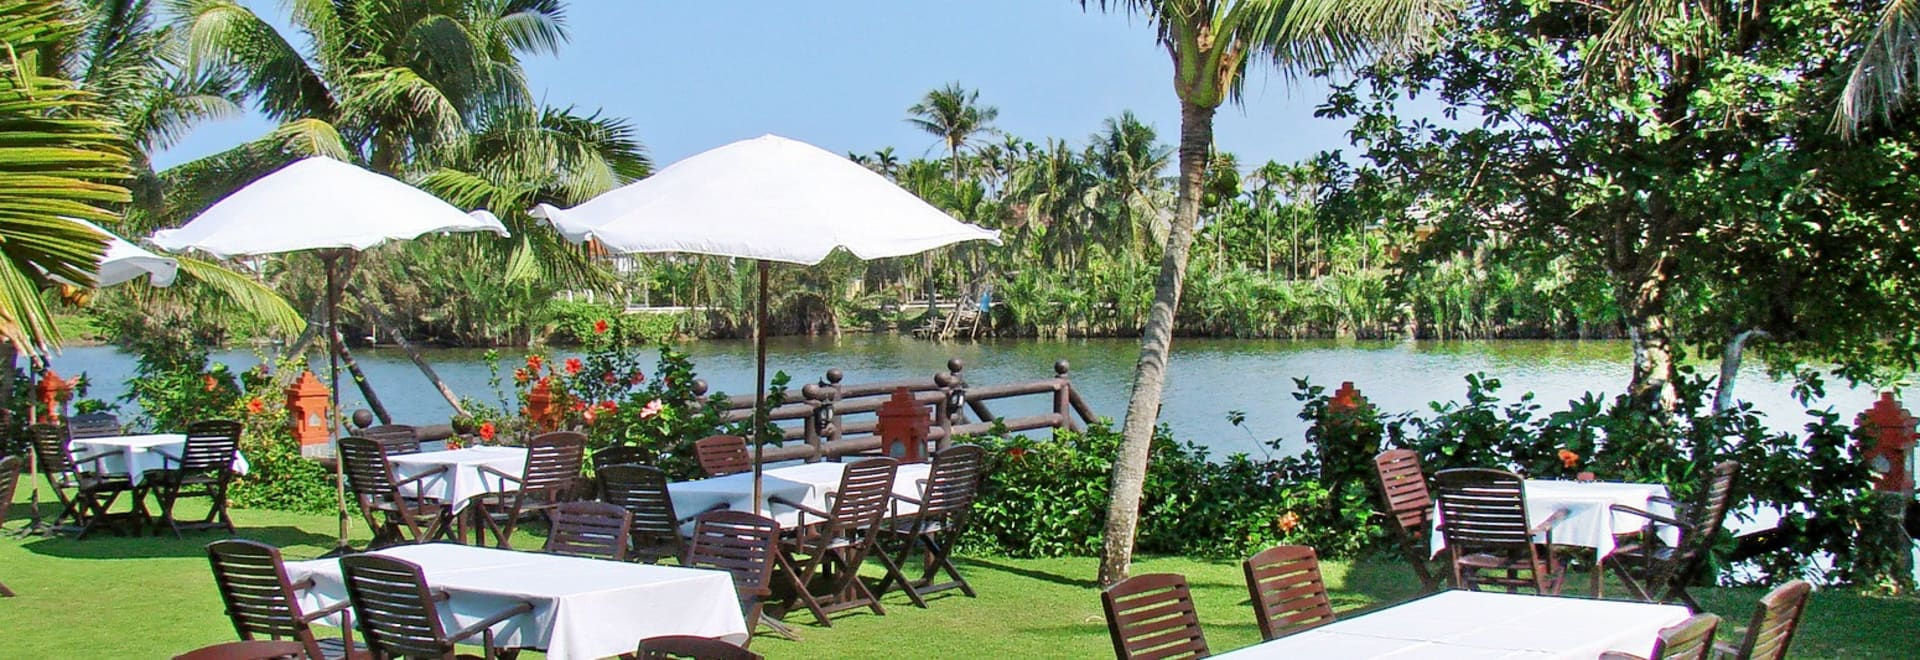 Best Hoi An Restaurants : Dine for a Soothing and Healthy Meal